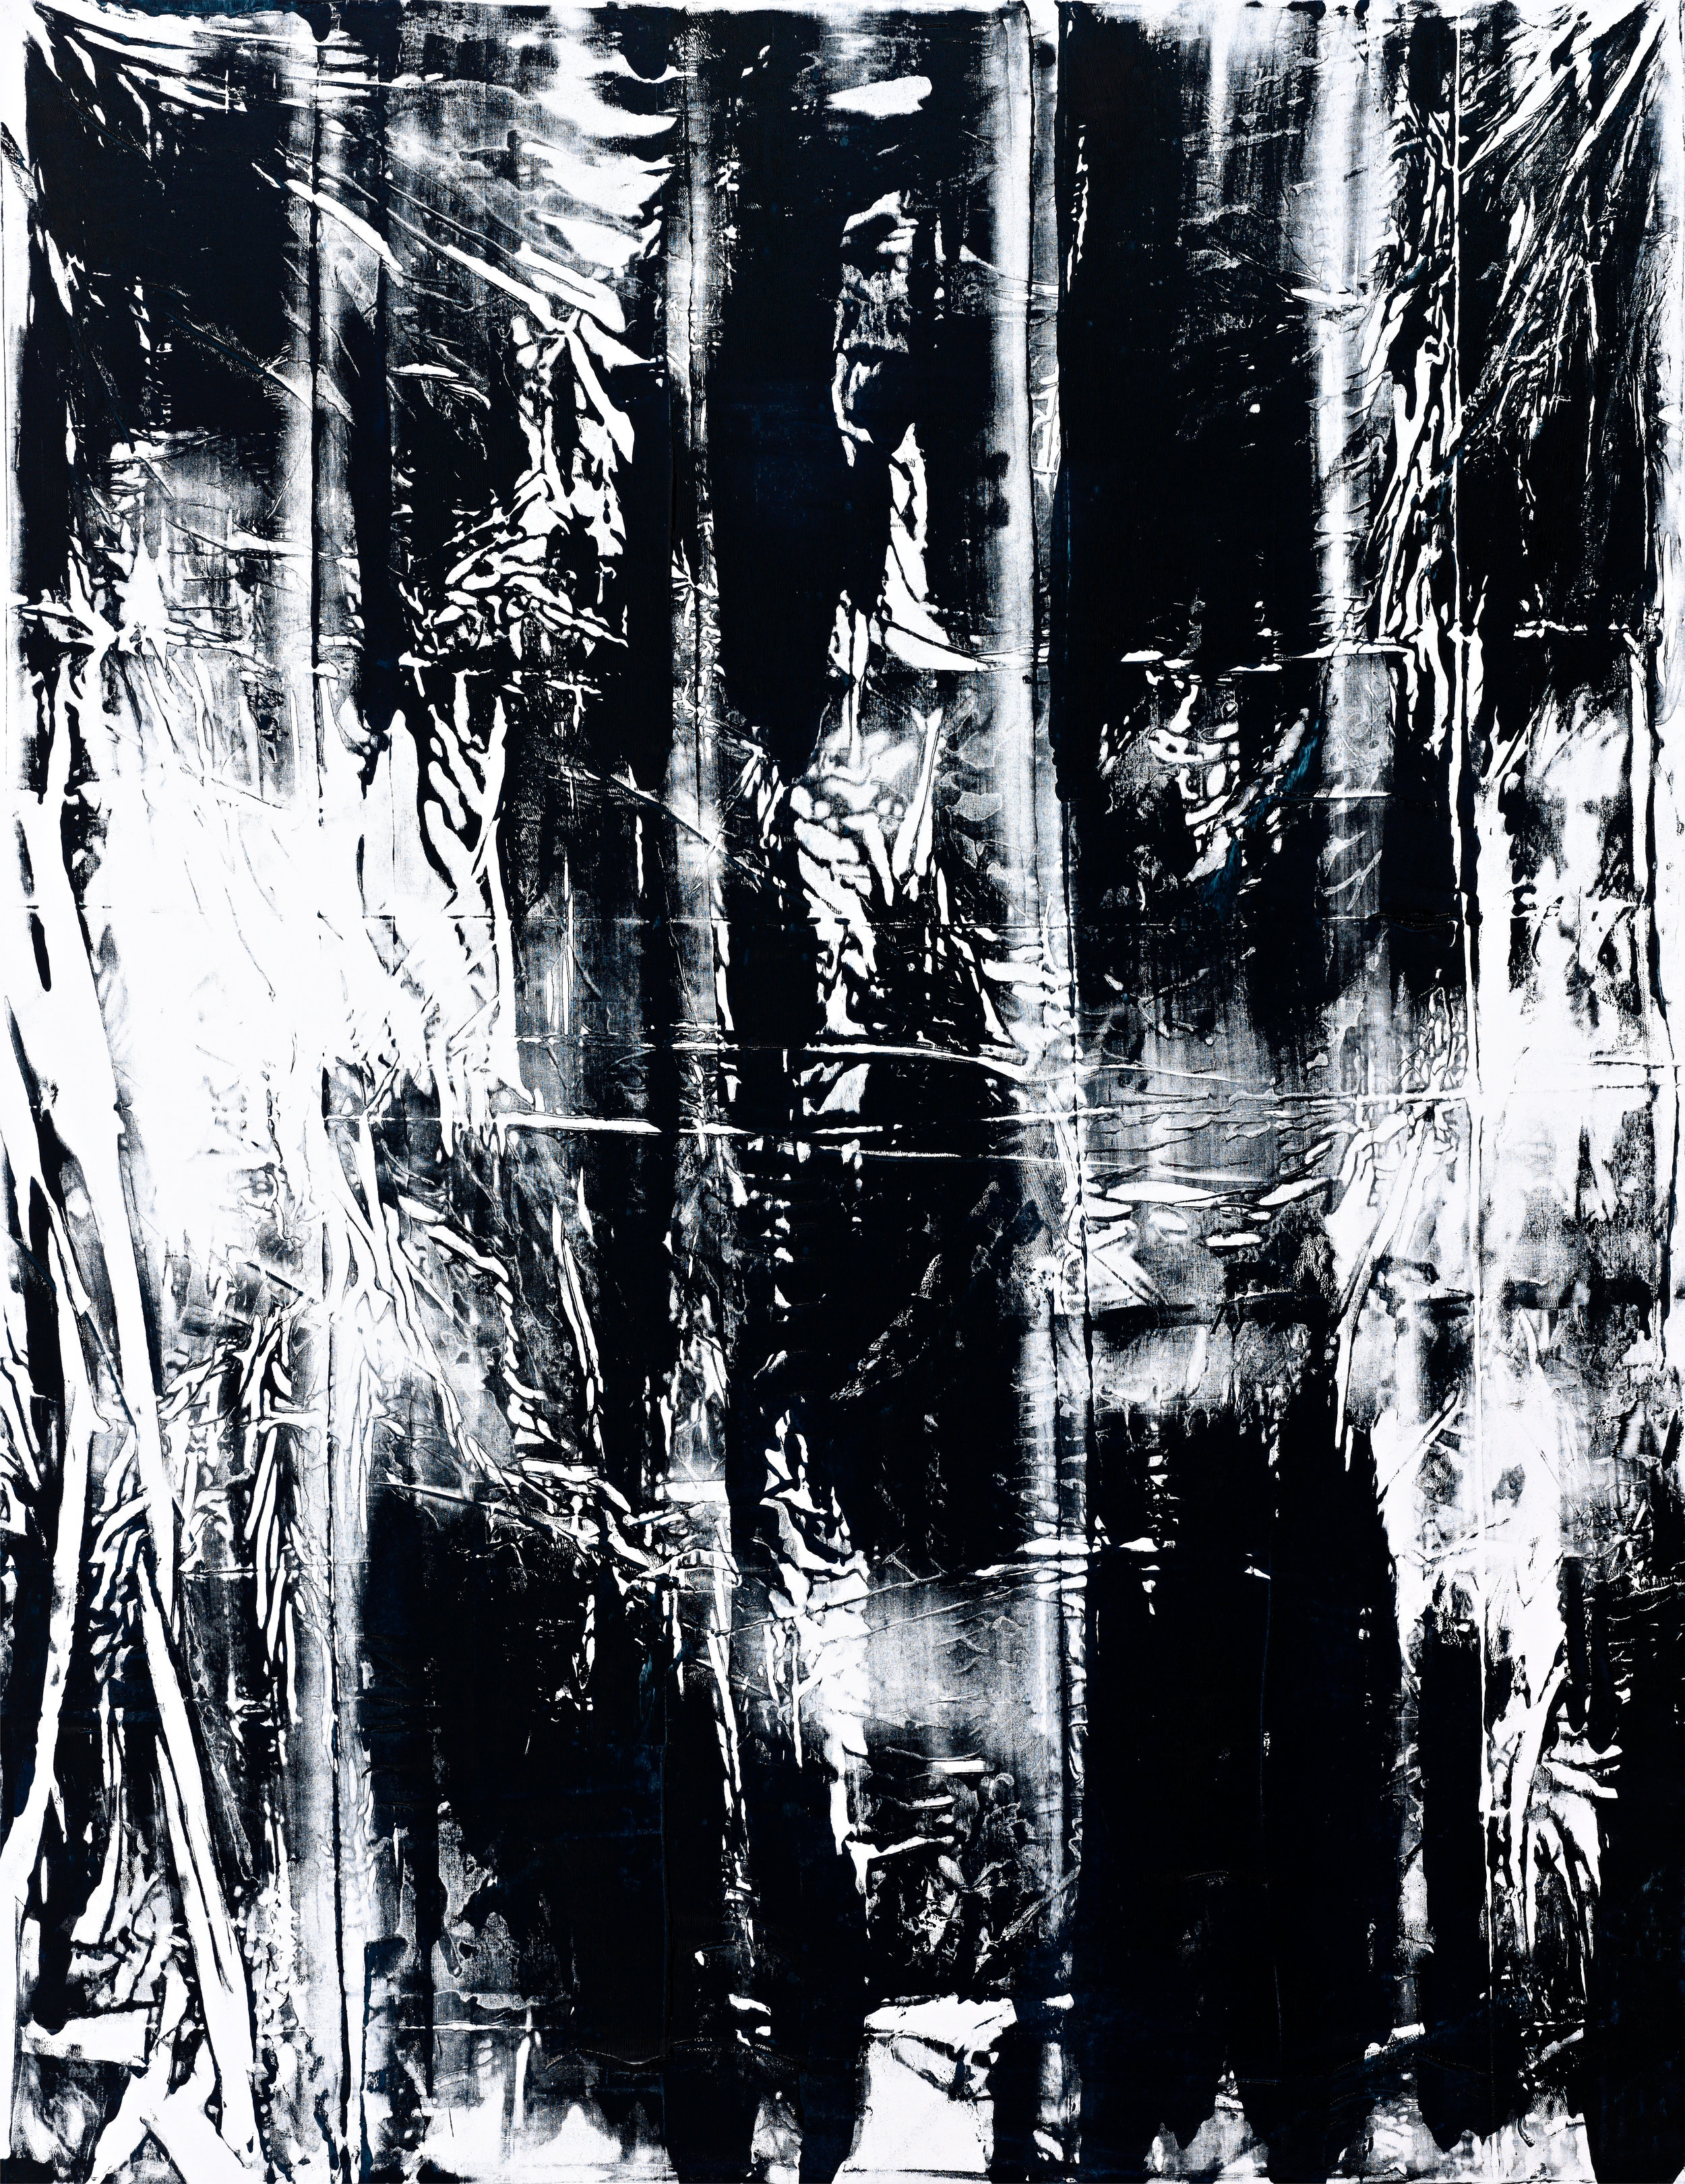 Untitled, 2009 oil on canvas 196 x 151 cm - 77 1/8 x 59 1/2 inches